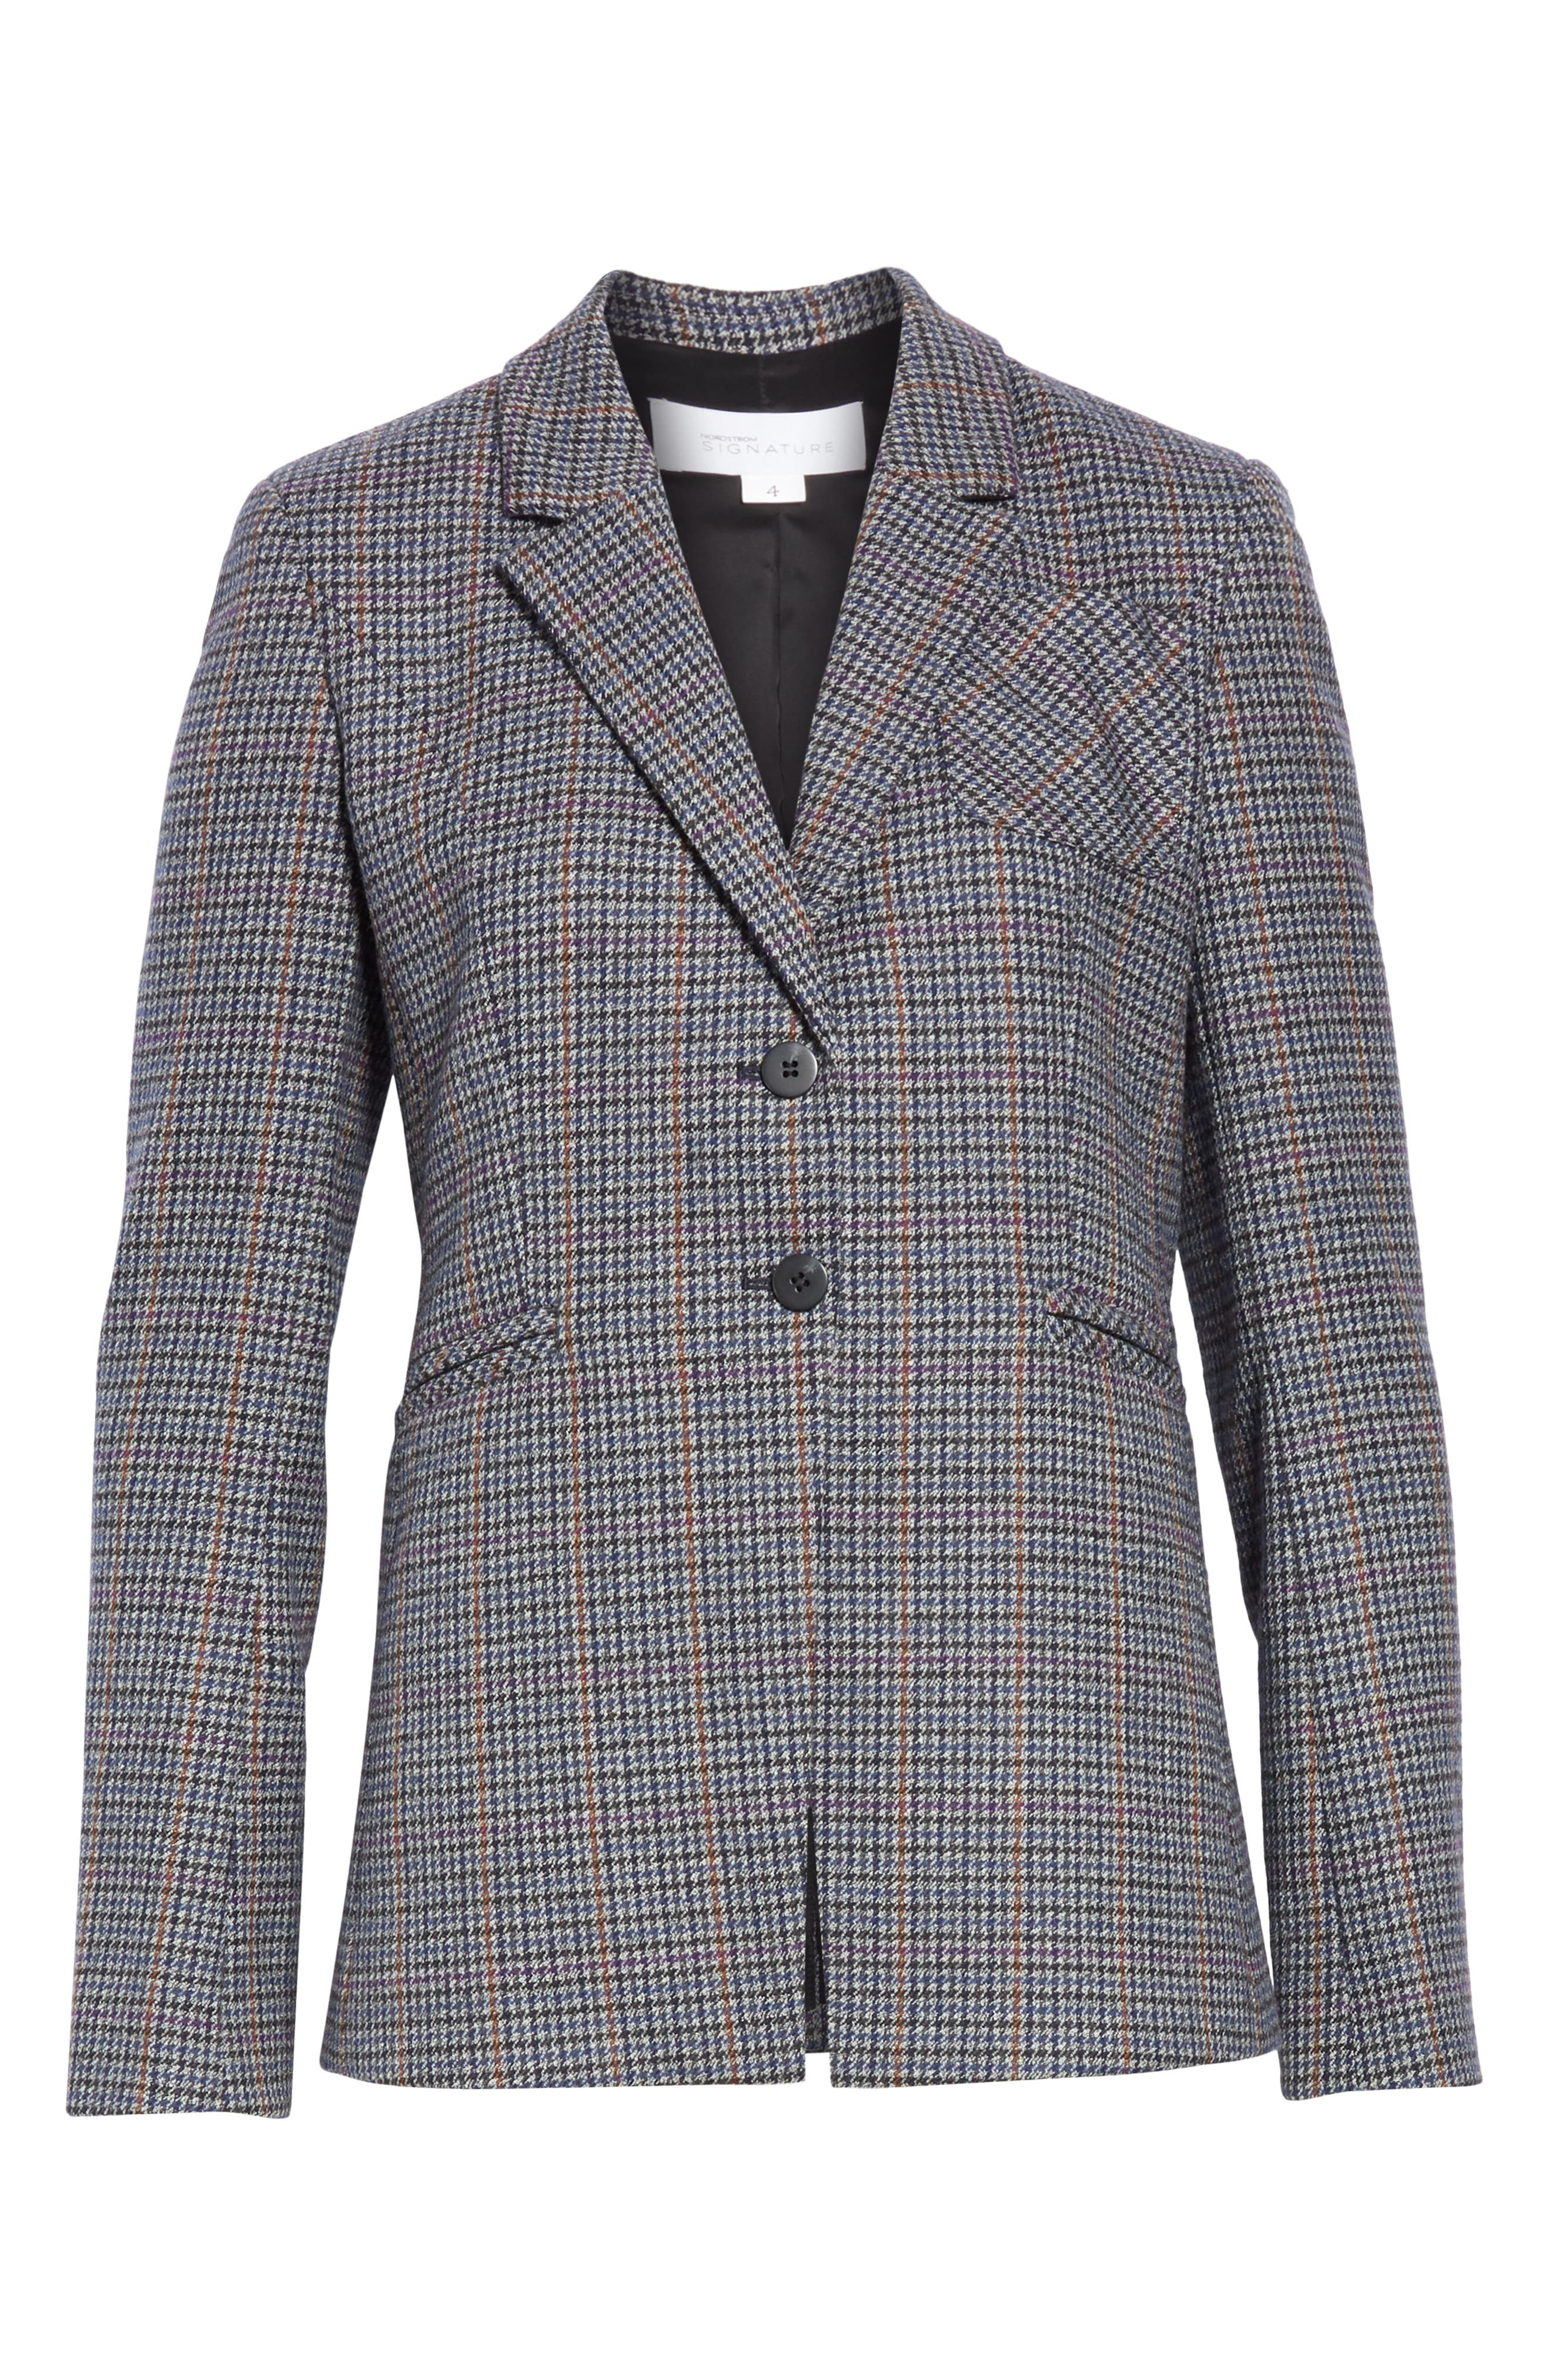 Elbow Patch Plaid Blazer,                             Alternate thumbnail 6, color,                             NAVY NIGHT HOUNDSTOOTH